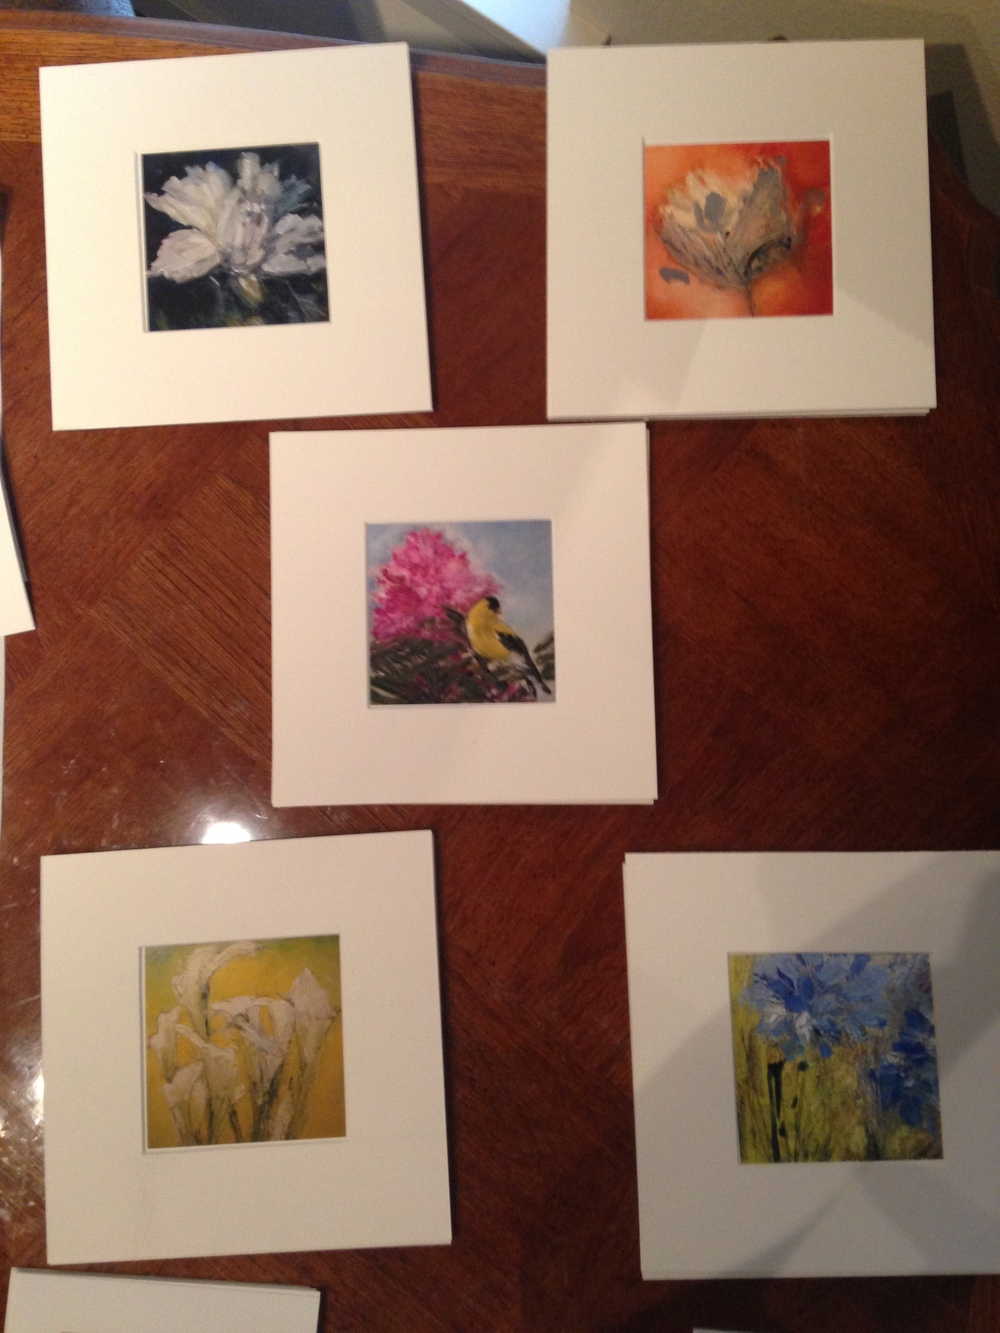 Laying out the prints of new work. Getting an idea of how things will look.